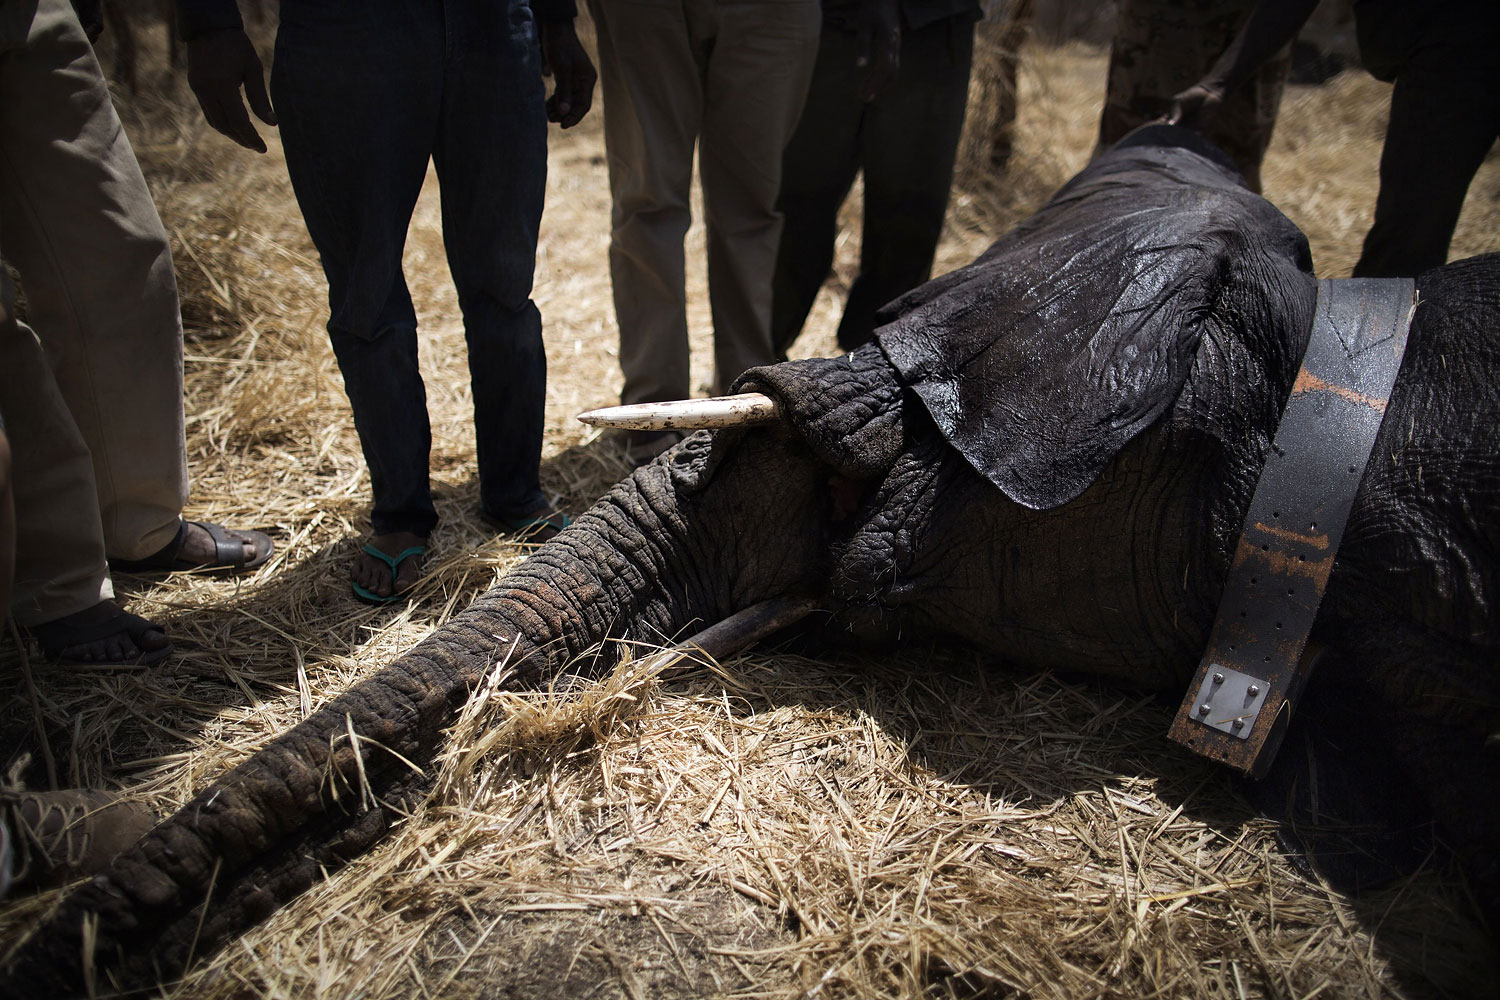 A collared elephant, darted at the Zakouma National on Park Feb. 23, 2014 rests, sedated.